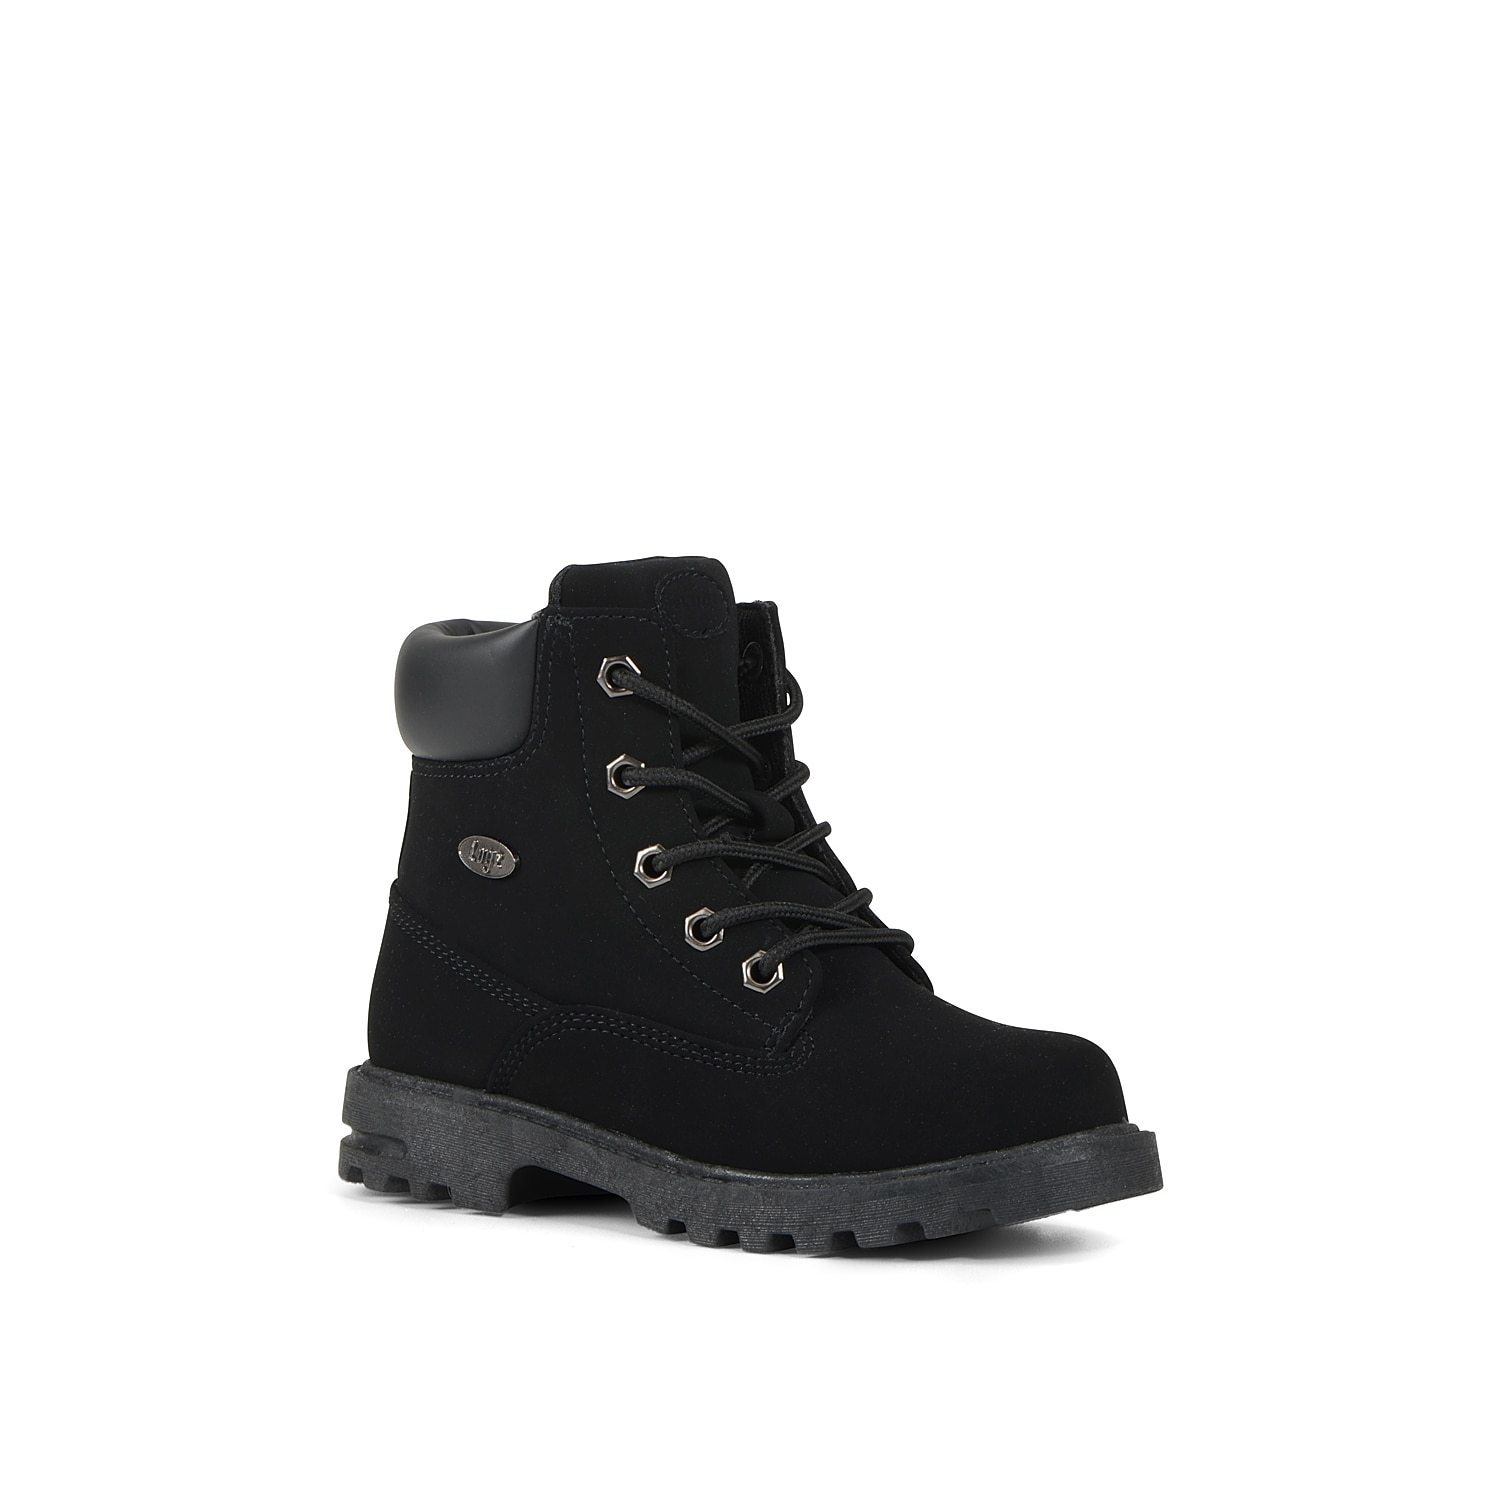 No matter what the day brings, he will choose the Empire boot from Lugz. This lace-up boot features a slip-resistant rubber sole to keep him grounded, and the Flexastride footbed provides lasting comfort. Click here for Kids Size Guide.